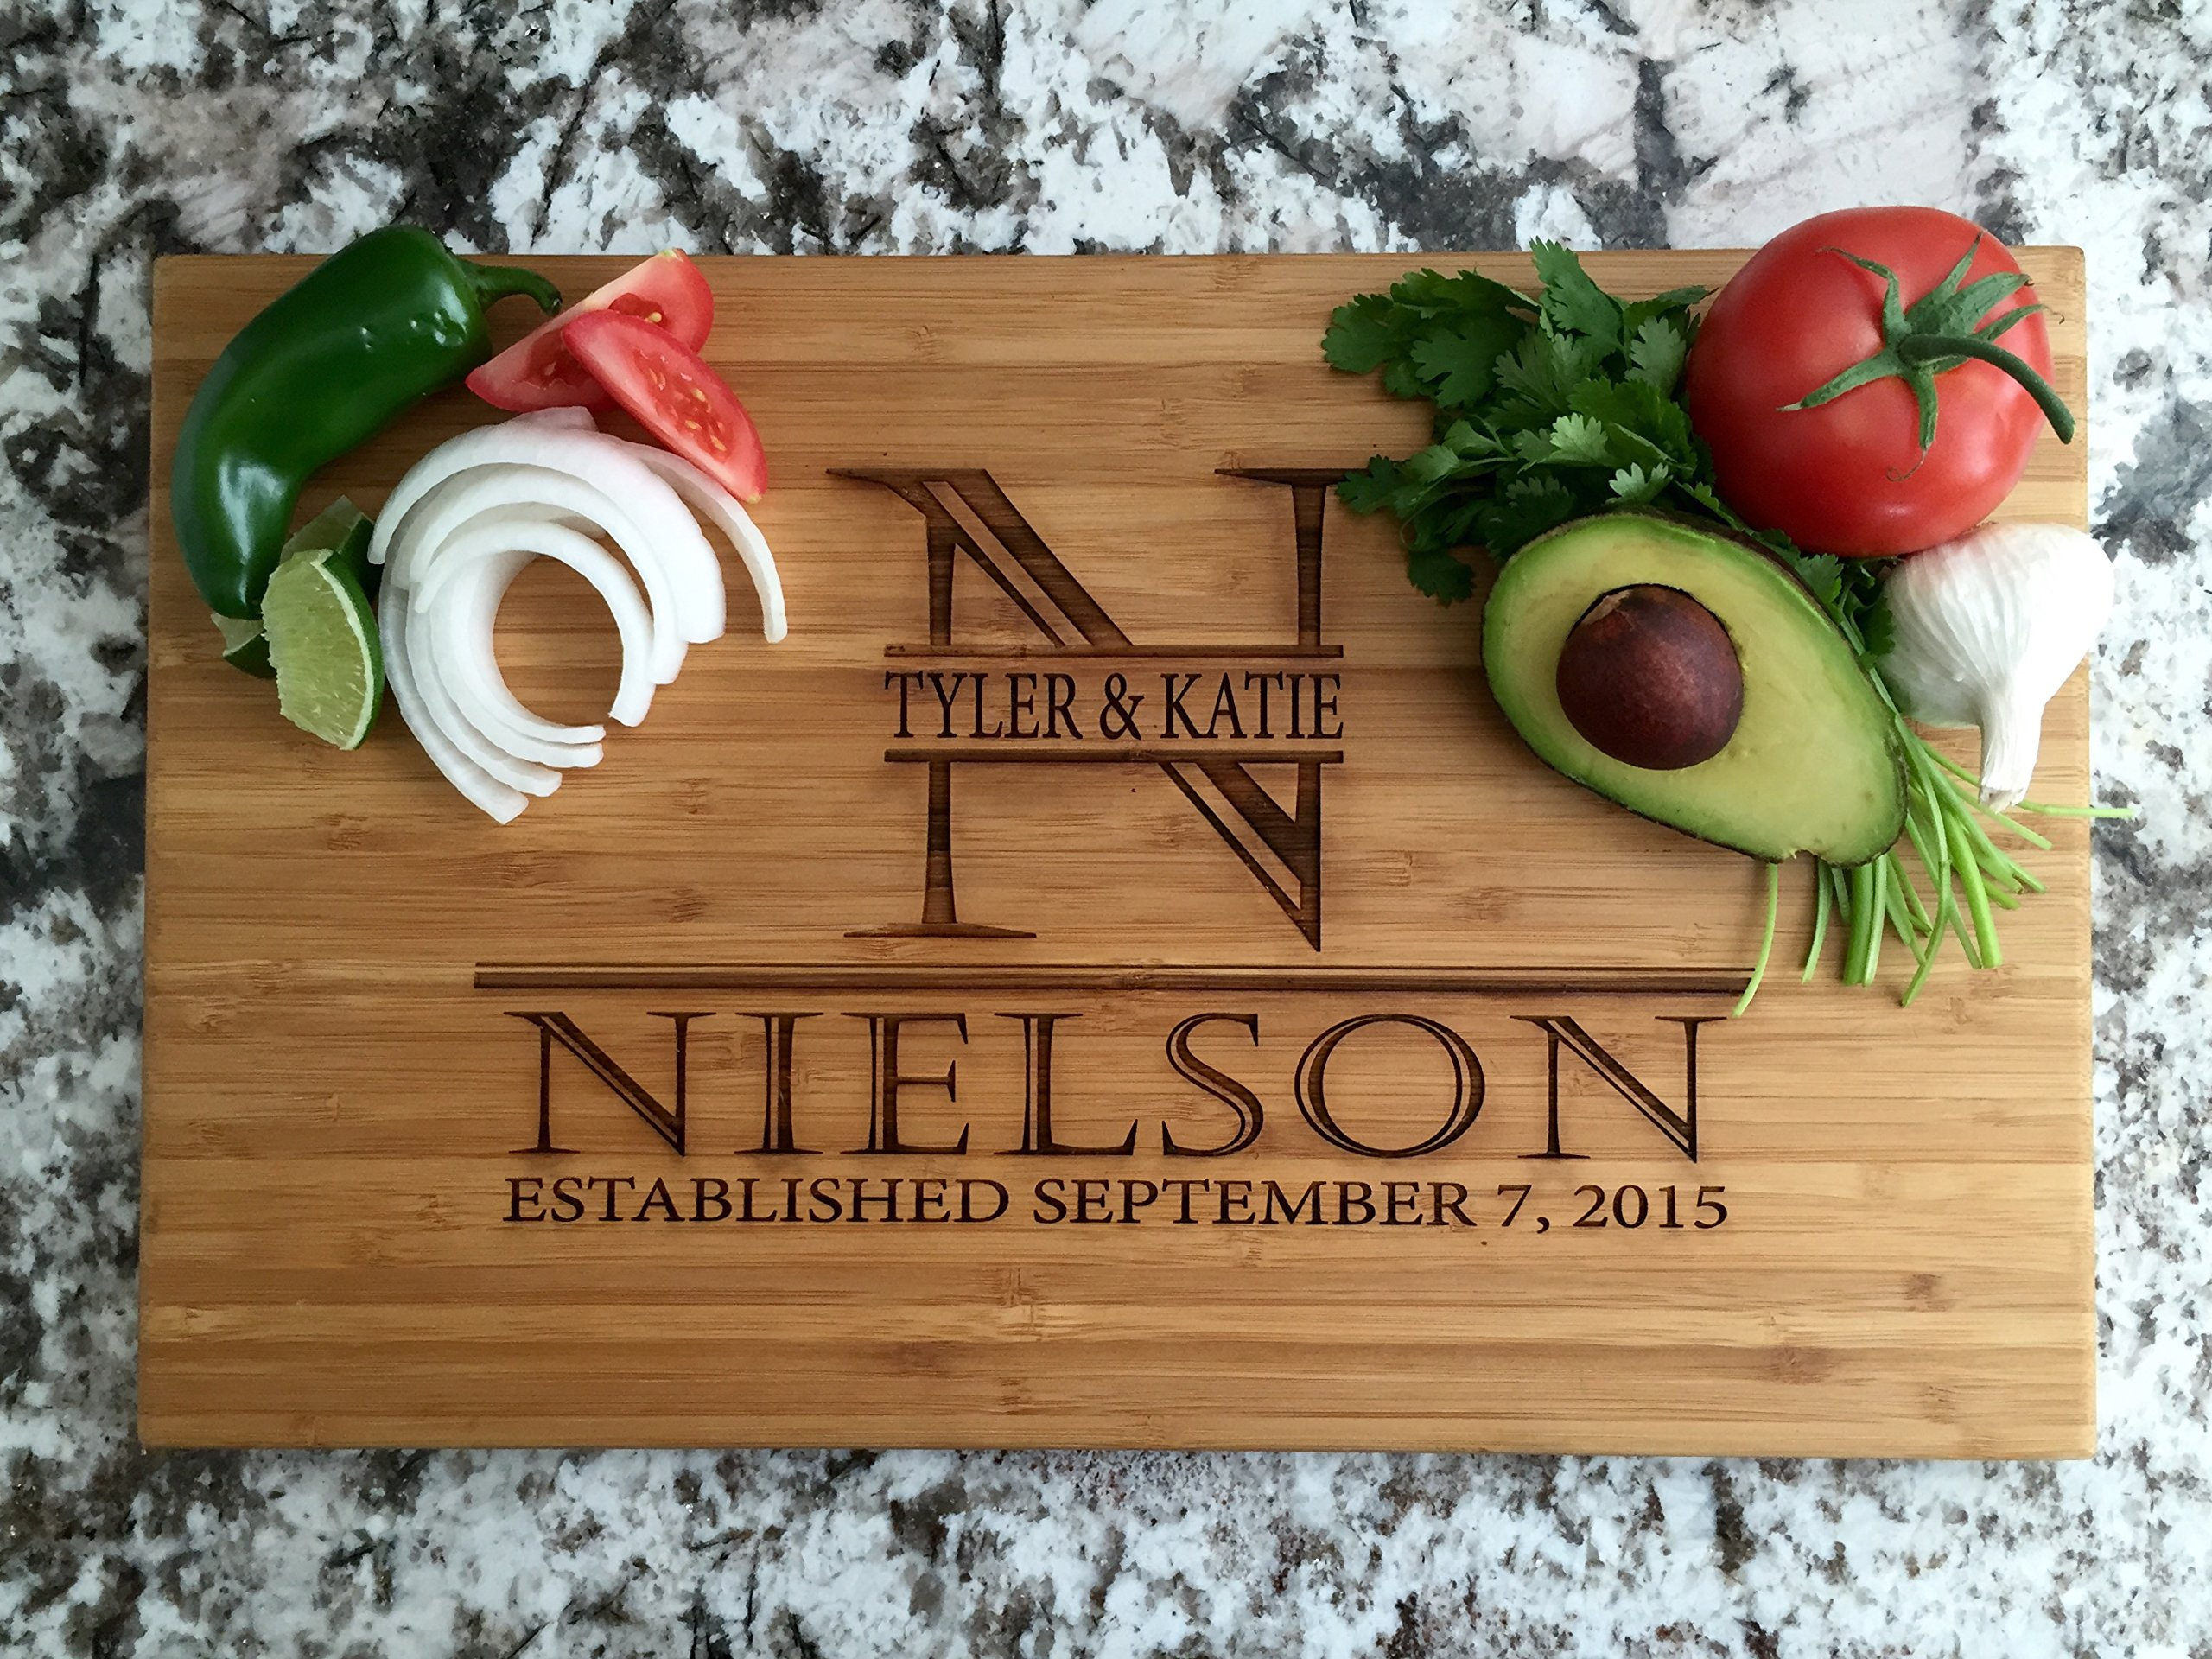 Personalized Wedding Gifts Cutting Board - Wood Cutting Boards, Also Bridal Shower and Housewarming Gifts (11 x 17 Single Tone Bamboo Rectangular, Nielson Design)